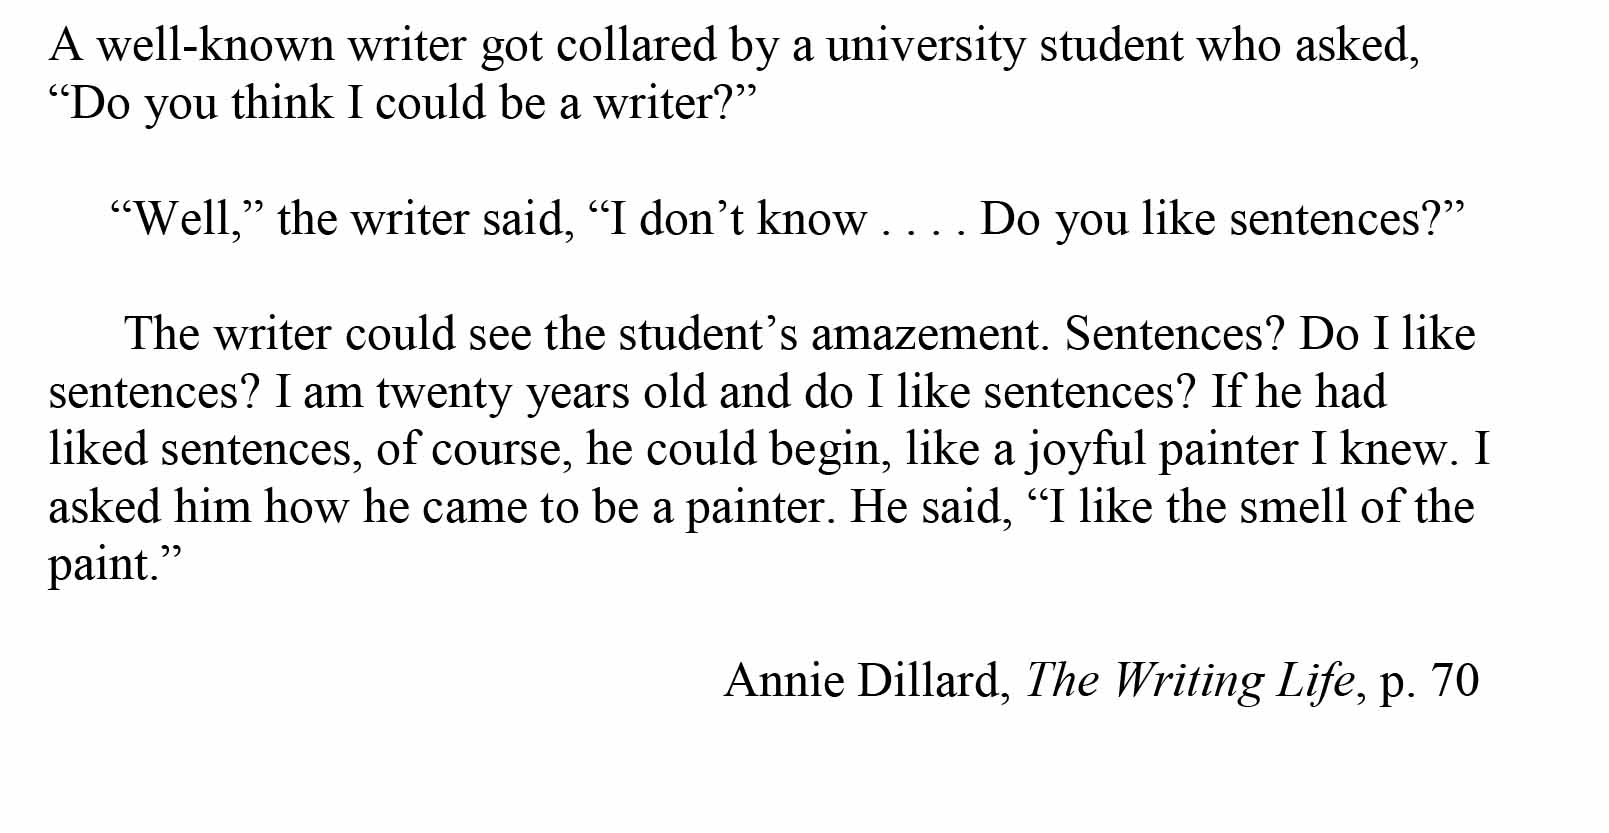 Quote from Annie Dillard about the importance of sentences for people who want to be writers